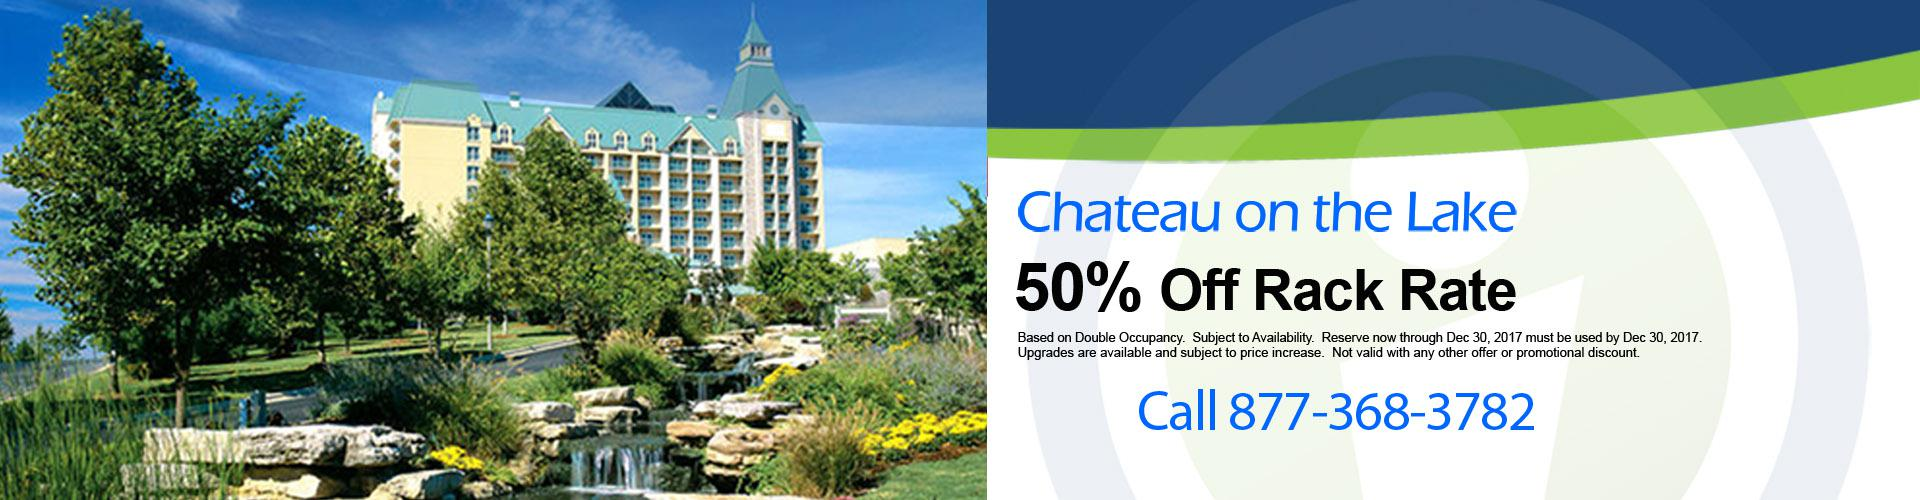 2017 Chateau on the Lake Phenomenal Deal! Limited Quantities.